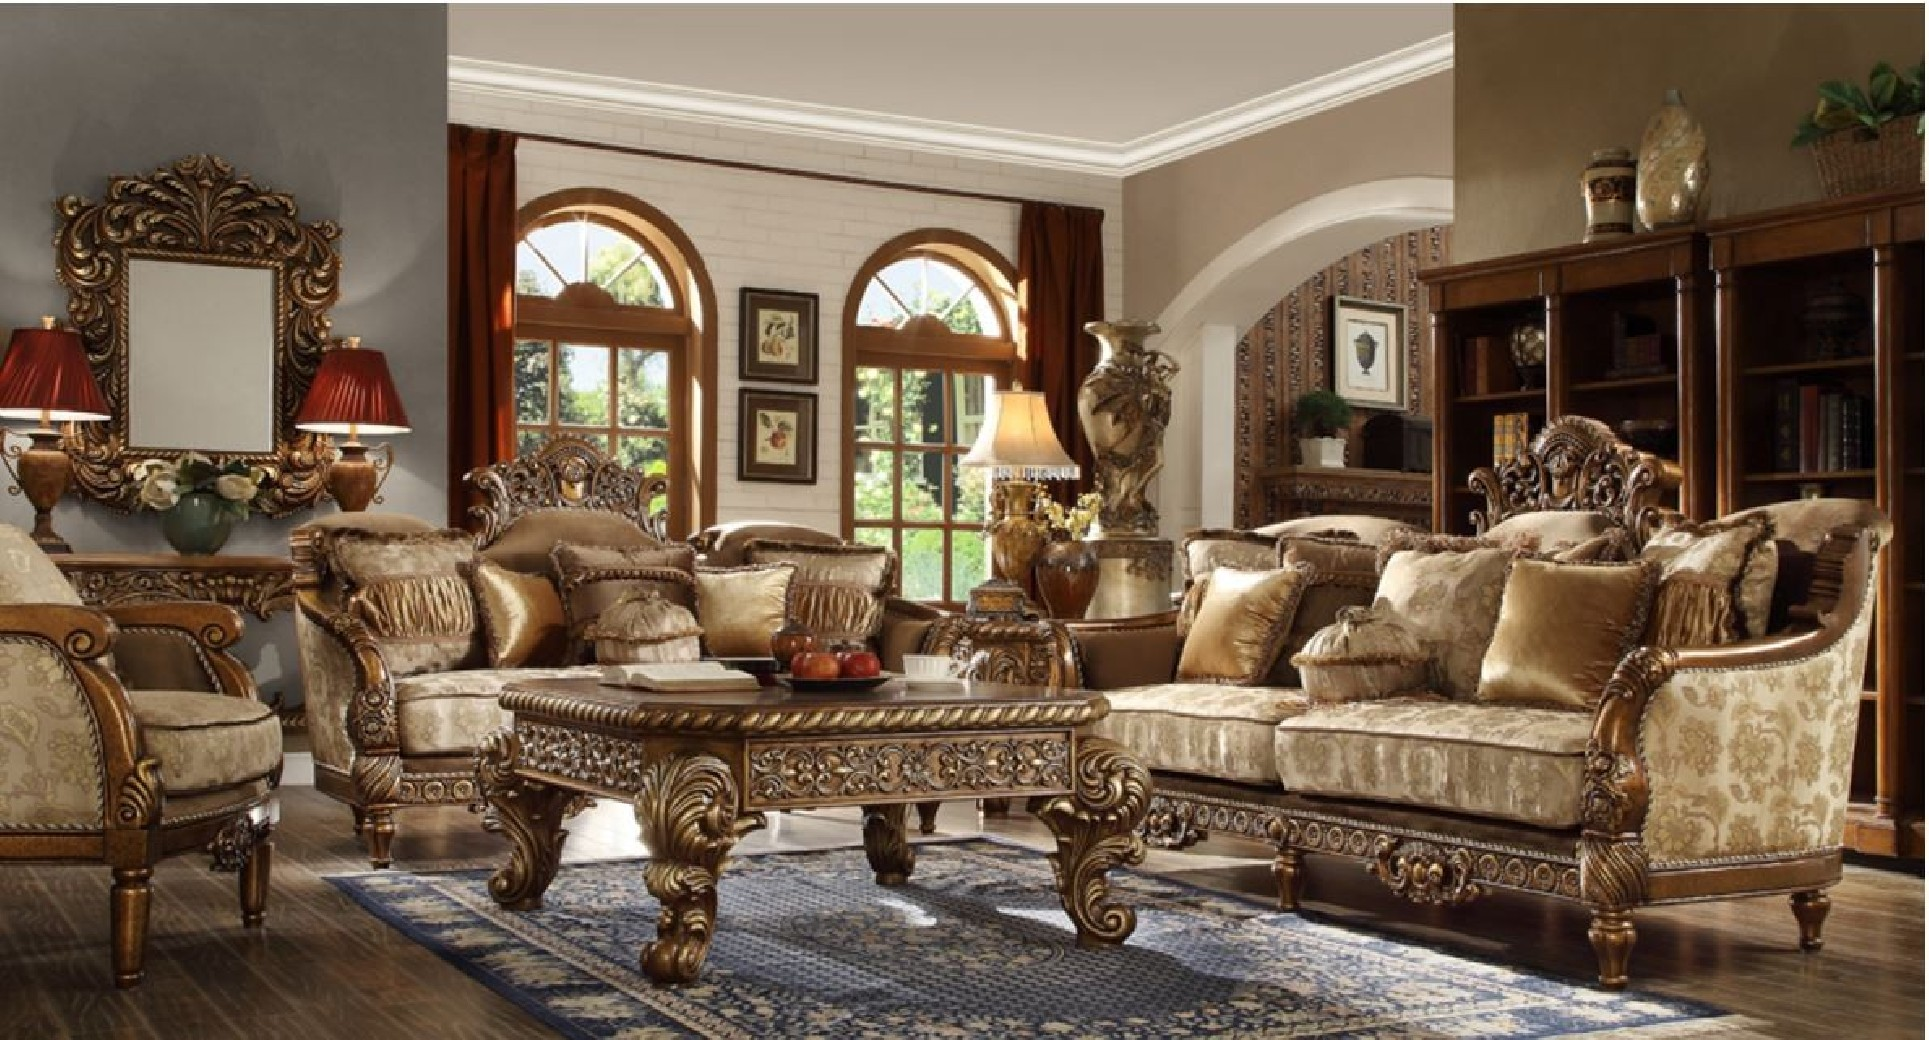 Hd 610 Homey Design Upholstery Living Room Set Victorian European Classic Design Sofa Set